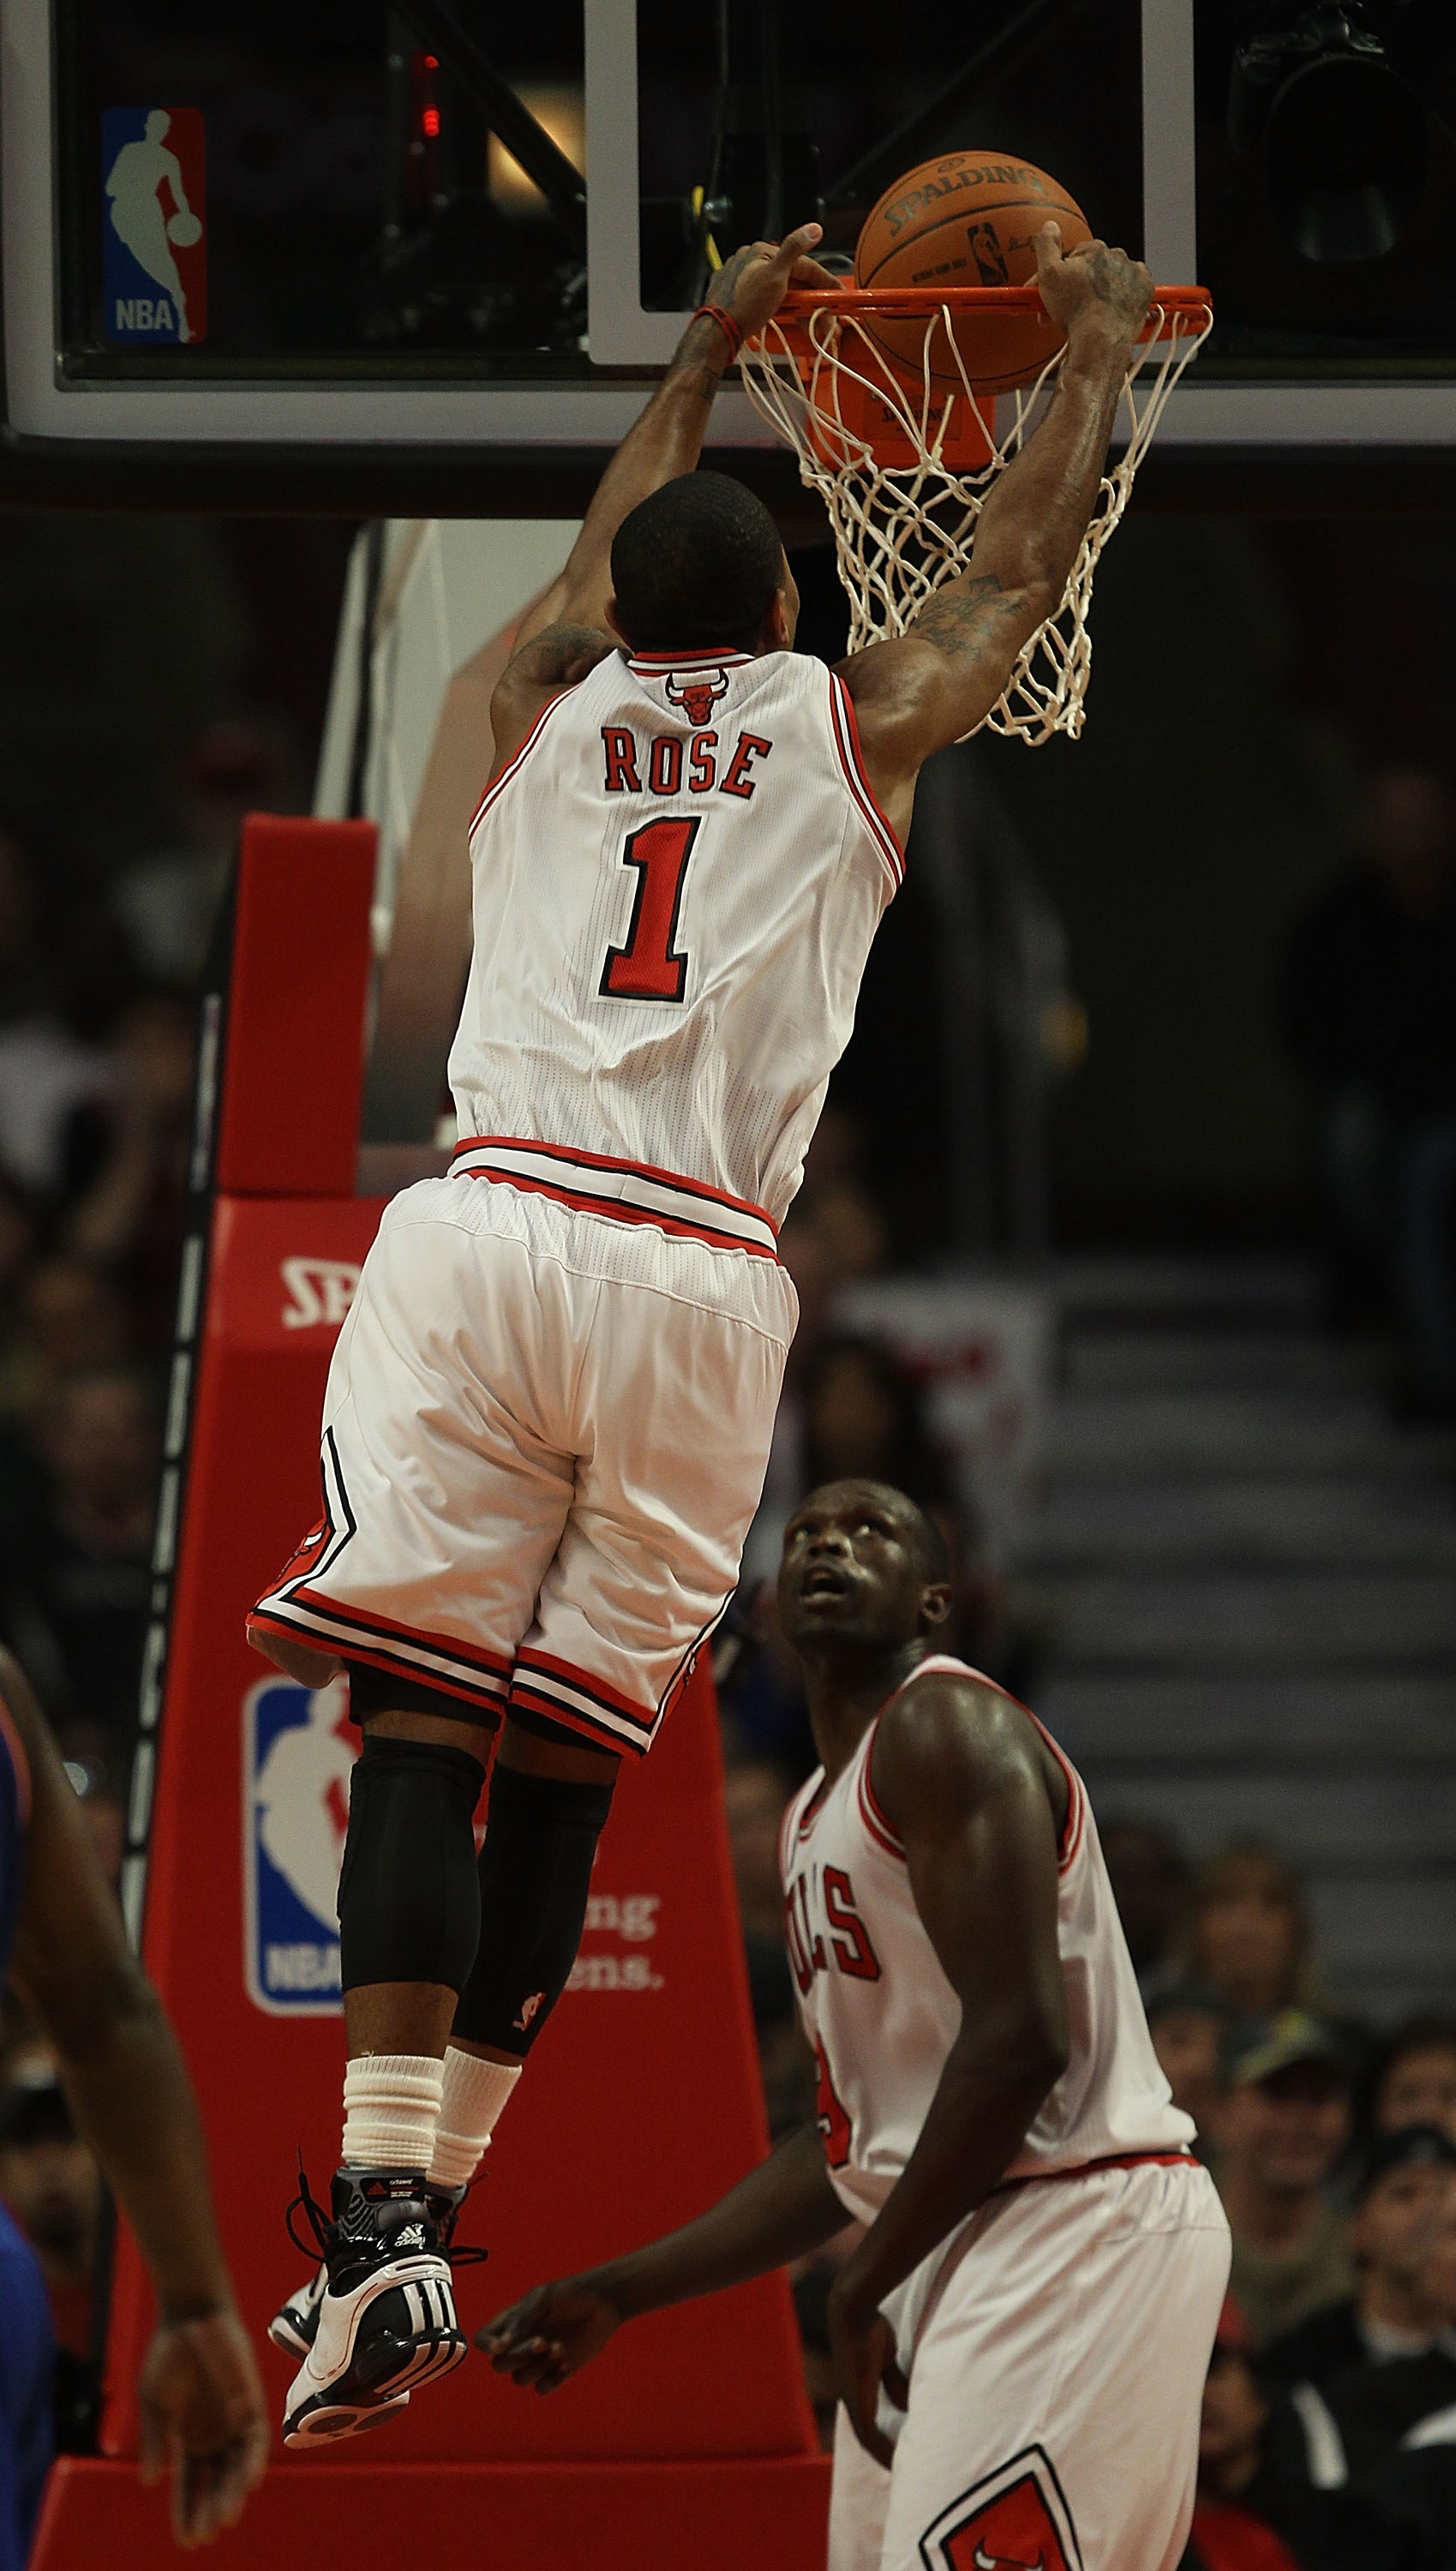 CHICAGO - NOVEMBER 04: Loul Deng #9 of the Chicago Bulls watches as his teammate Derrick Rose #1 dunks the ball against the New York Knicks at the United Center on November 4, 2010 in Chicago, Illinois. NOTE TO USER: User expressly acknowledges and agrees